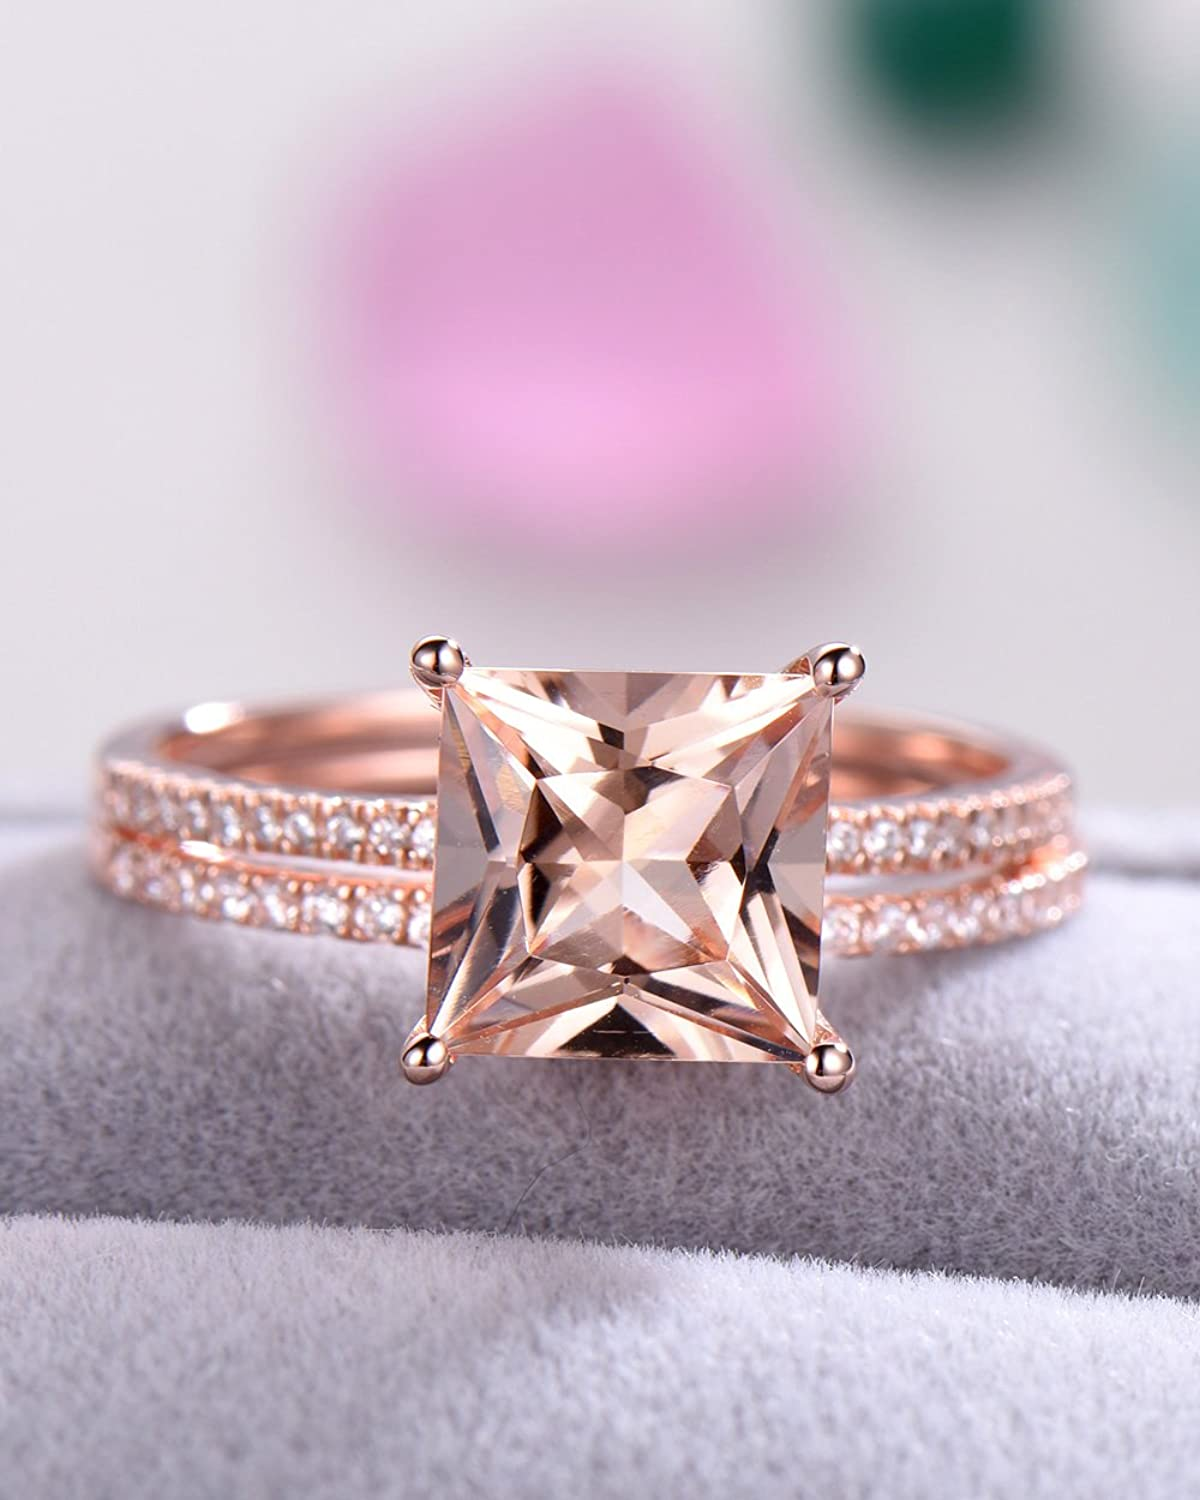 Amazon.com: 8mm Princess Cut Pink Morganite Wedding Ring Set 925 ...